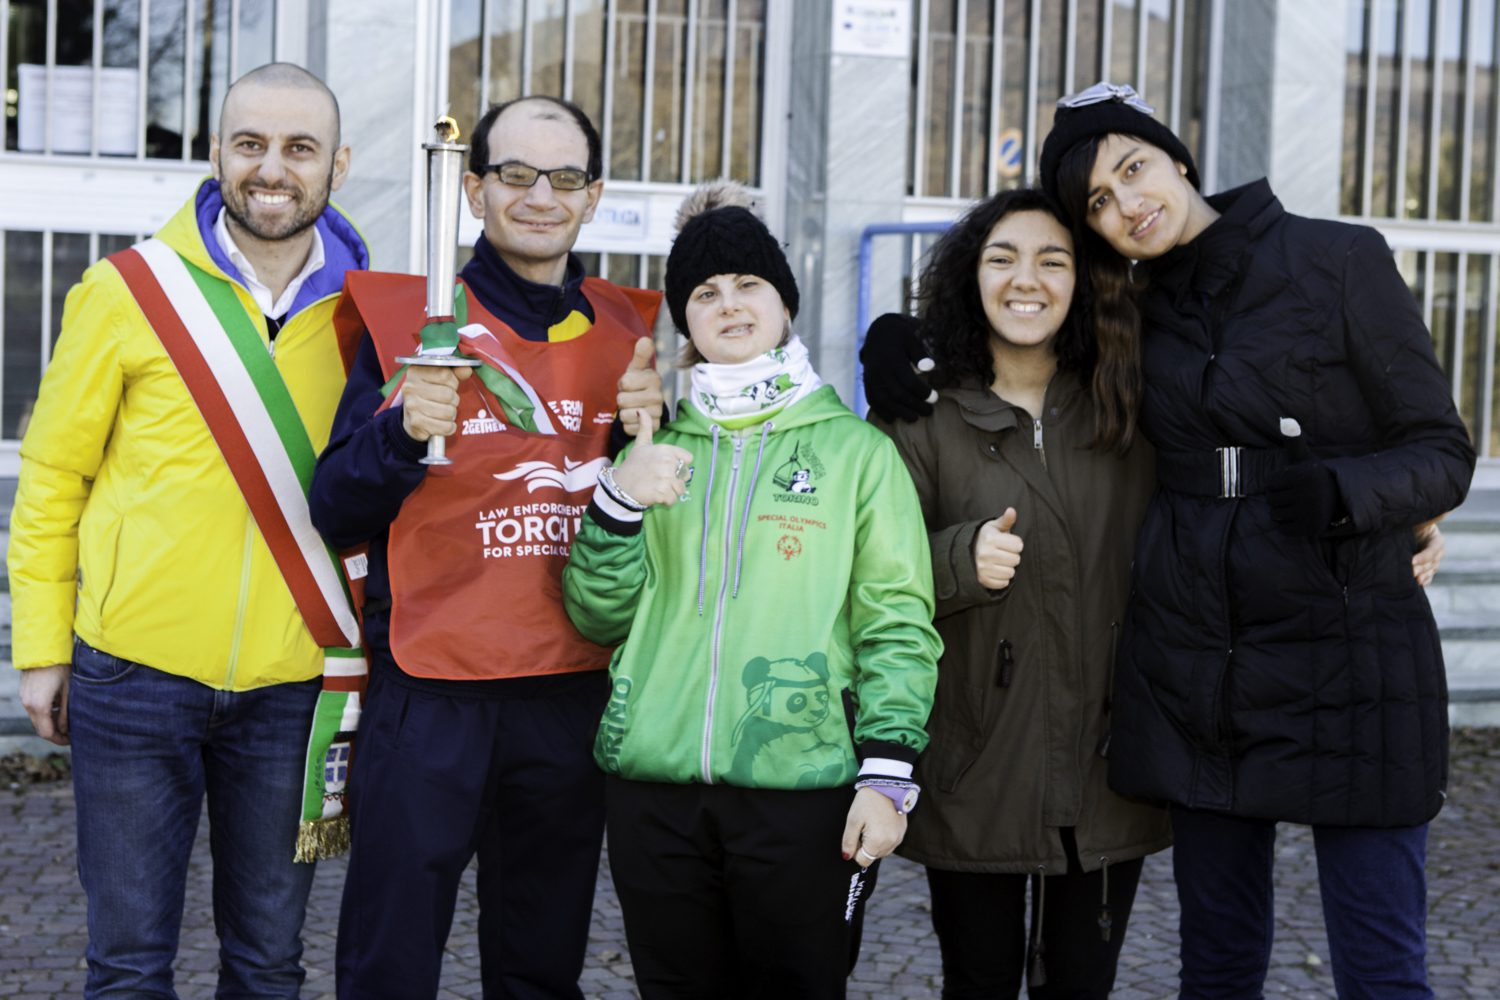 special_olympics2019_201.jpg?fit=1500%2C1000